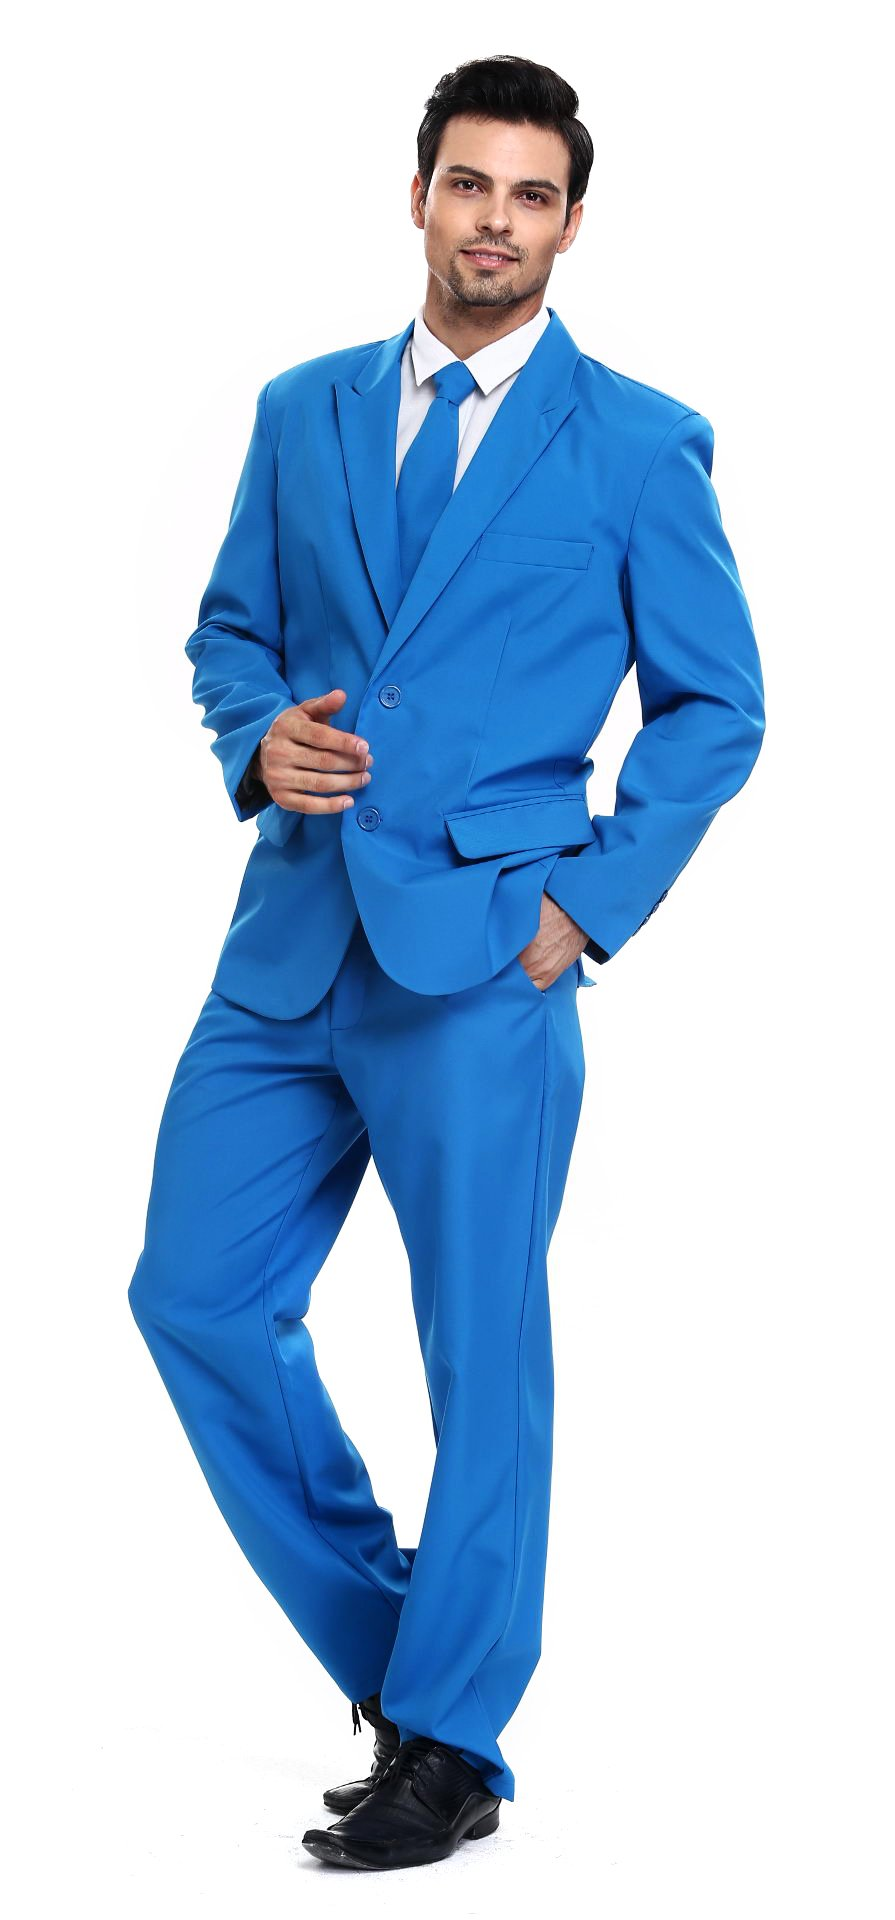 a59ca7728 Galleon - U LOOK UGLY TODAY Men s Party Suit Blue Solid Color Bachelor  Party Suit XX-Large